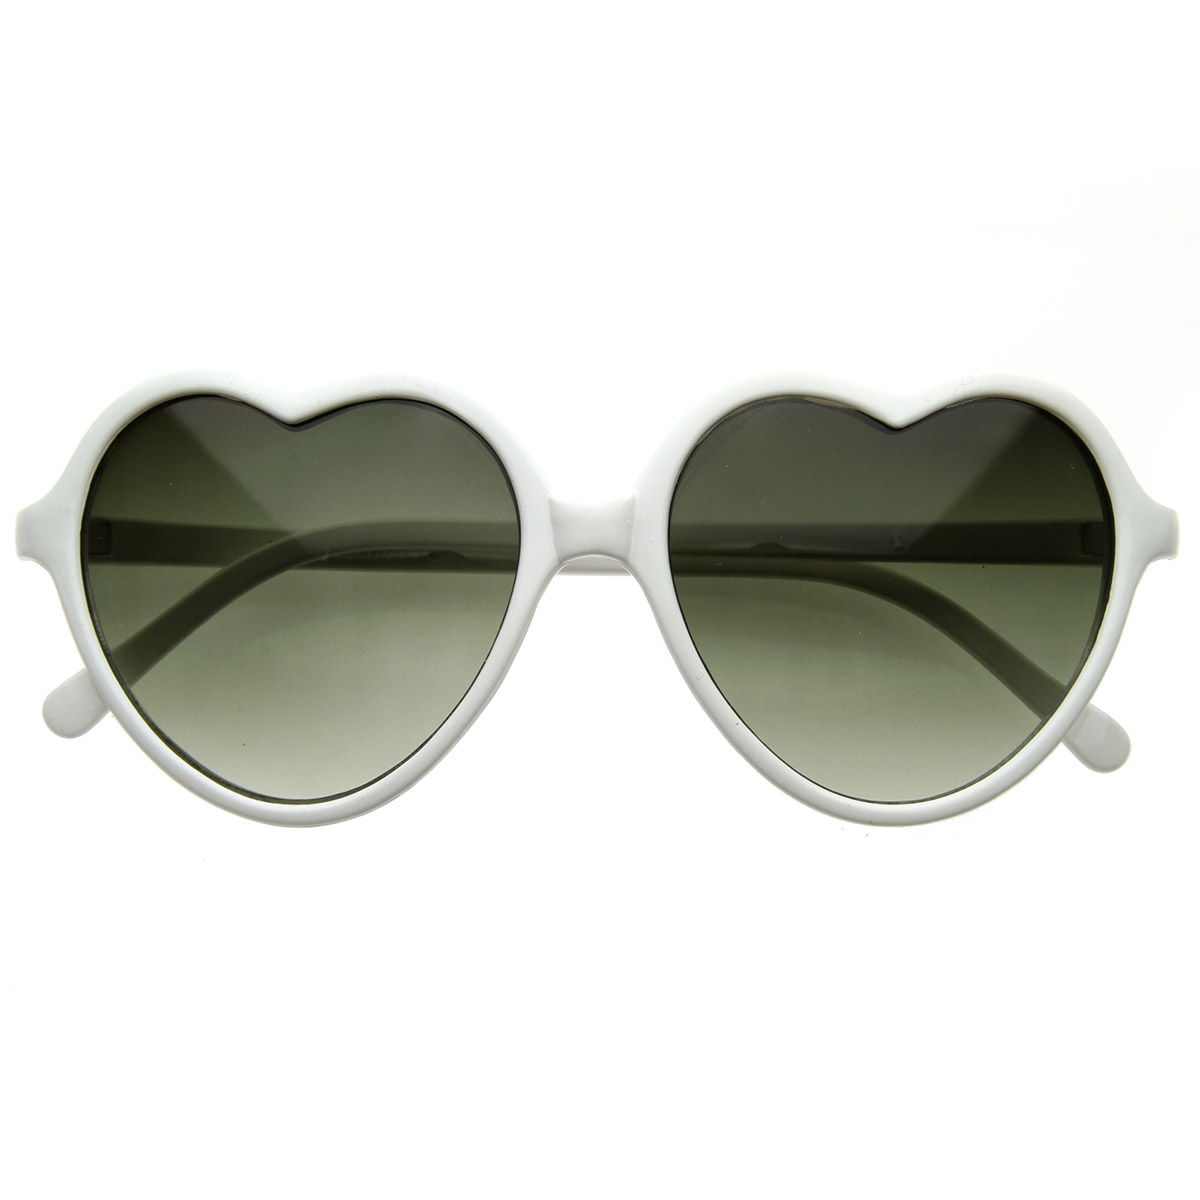 Large Thin Frame Glasses : Large Oversized Thin Frame Lovely Heart Shaped Womens ...